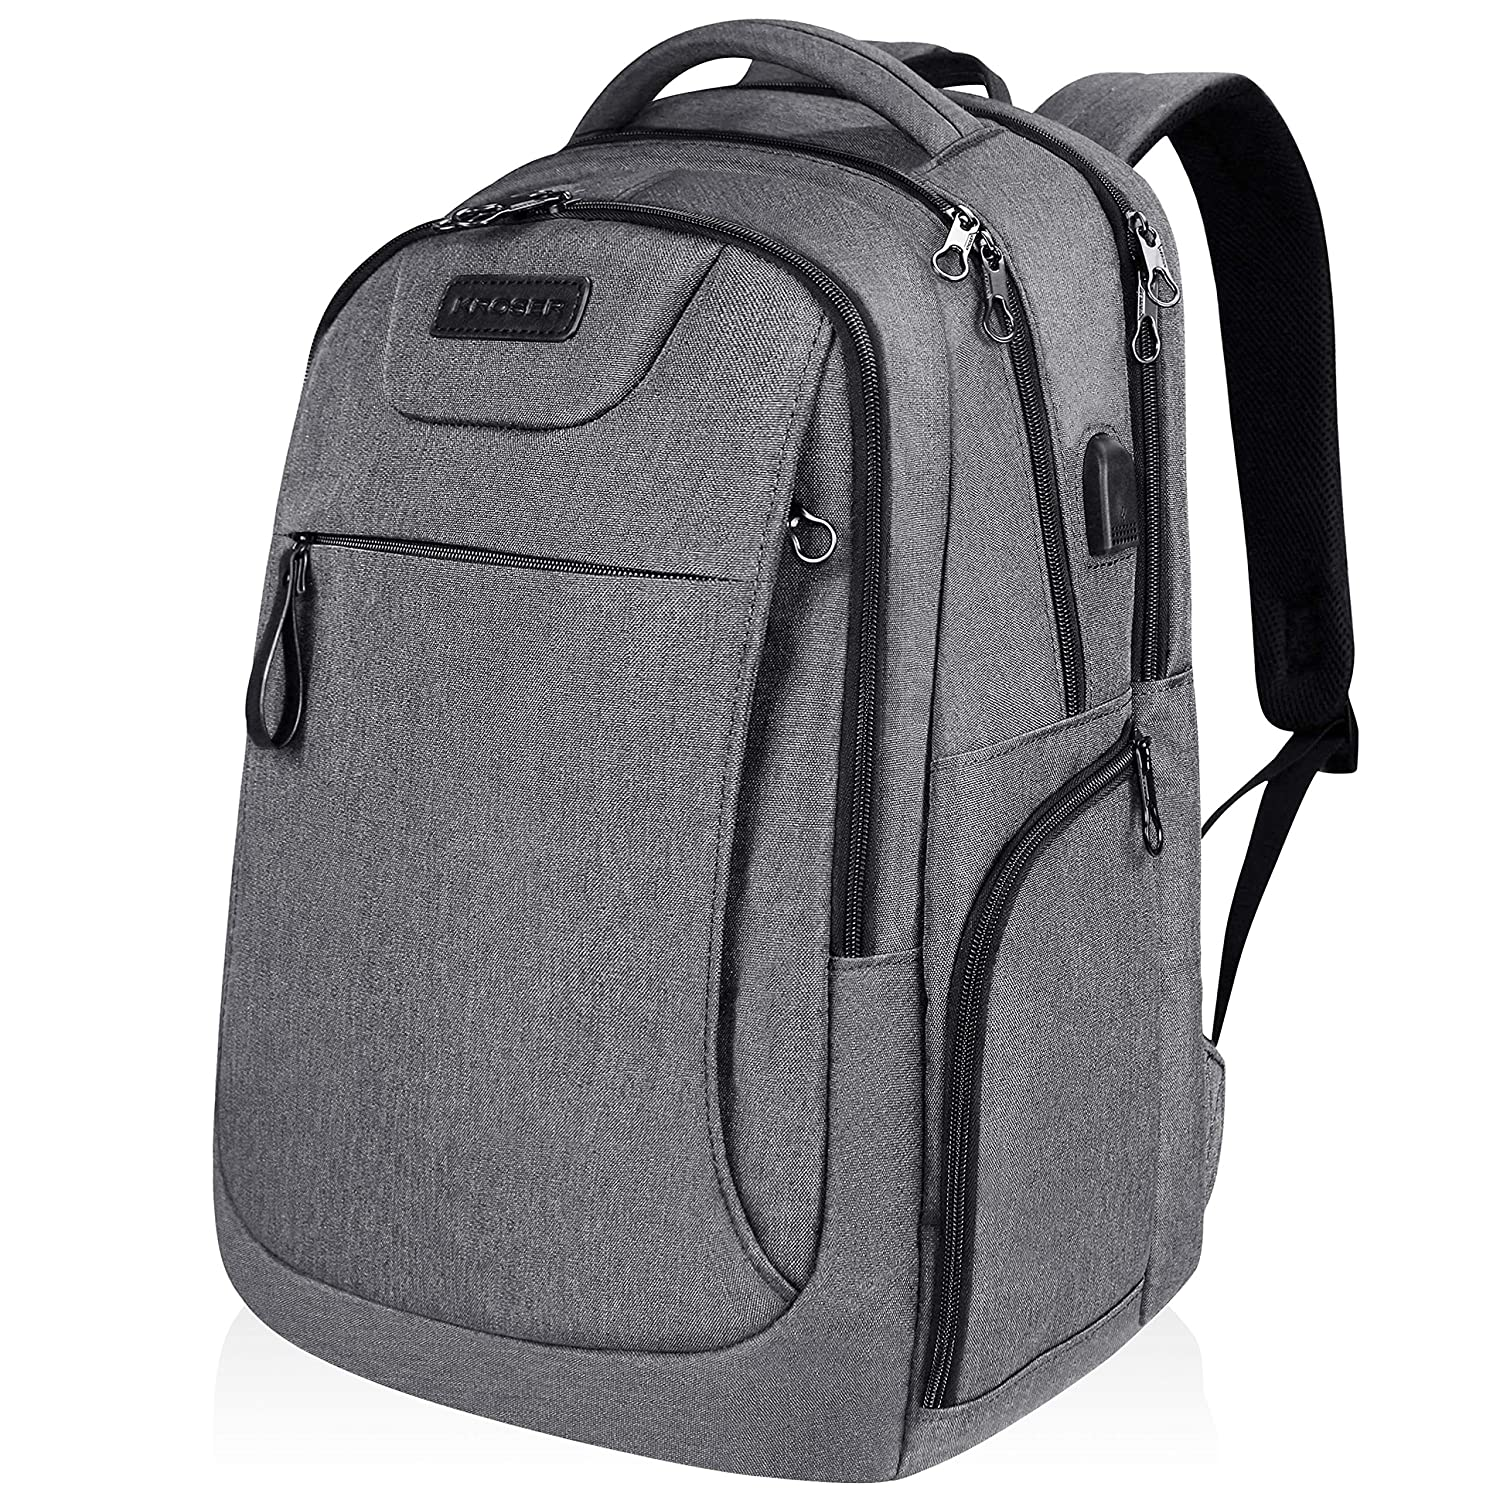 KROSER Laptop Backpack for 15.6-17.3 Inch Laptop Anti-Theft Large Computer Backpack with USB Charging Port Water-Repellent Casual Daypack for Travel/Business/College/Men/Women-Charcoal Black